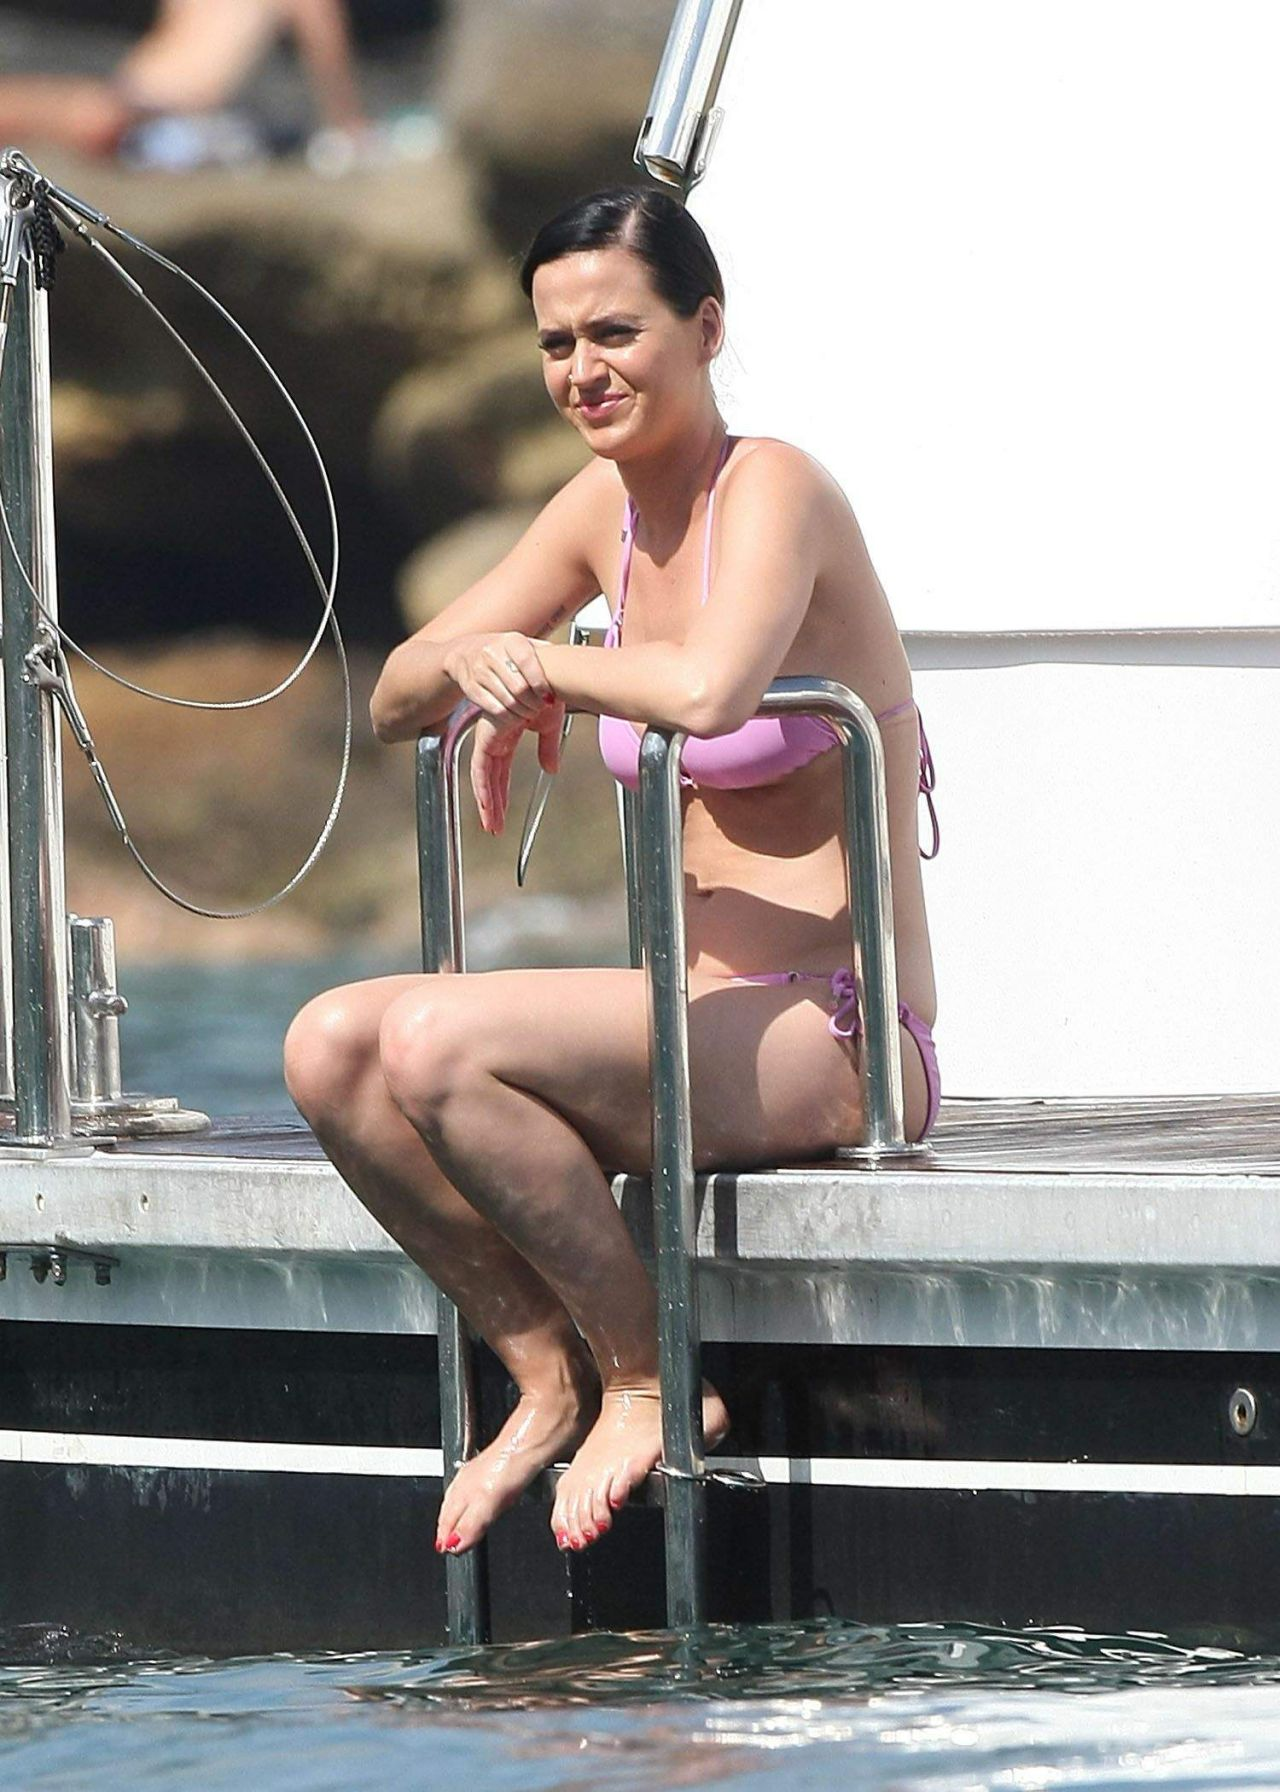 Katy Perry Bikini Candids - Sydney Harbour, November 2014 кэти перри 2017